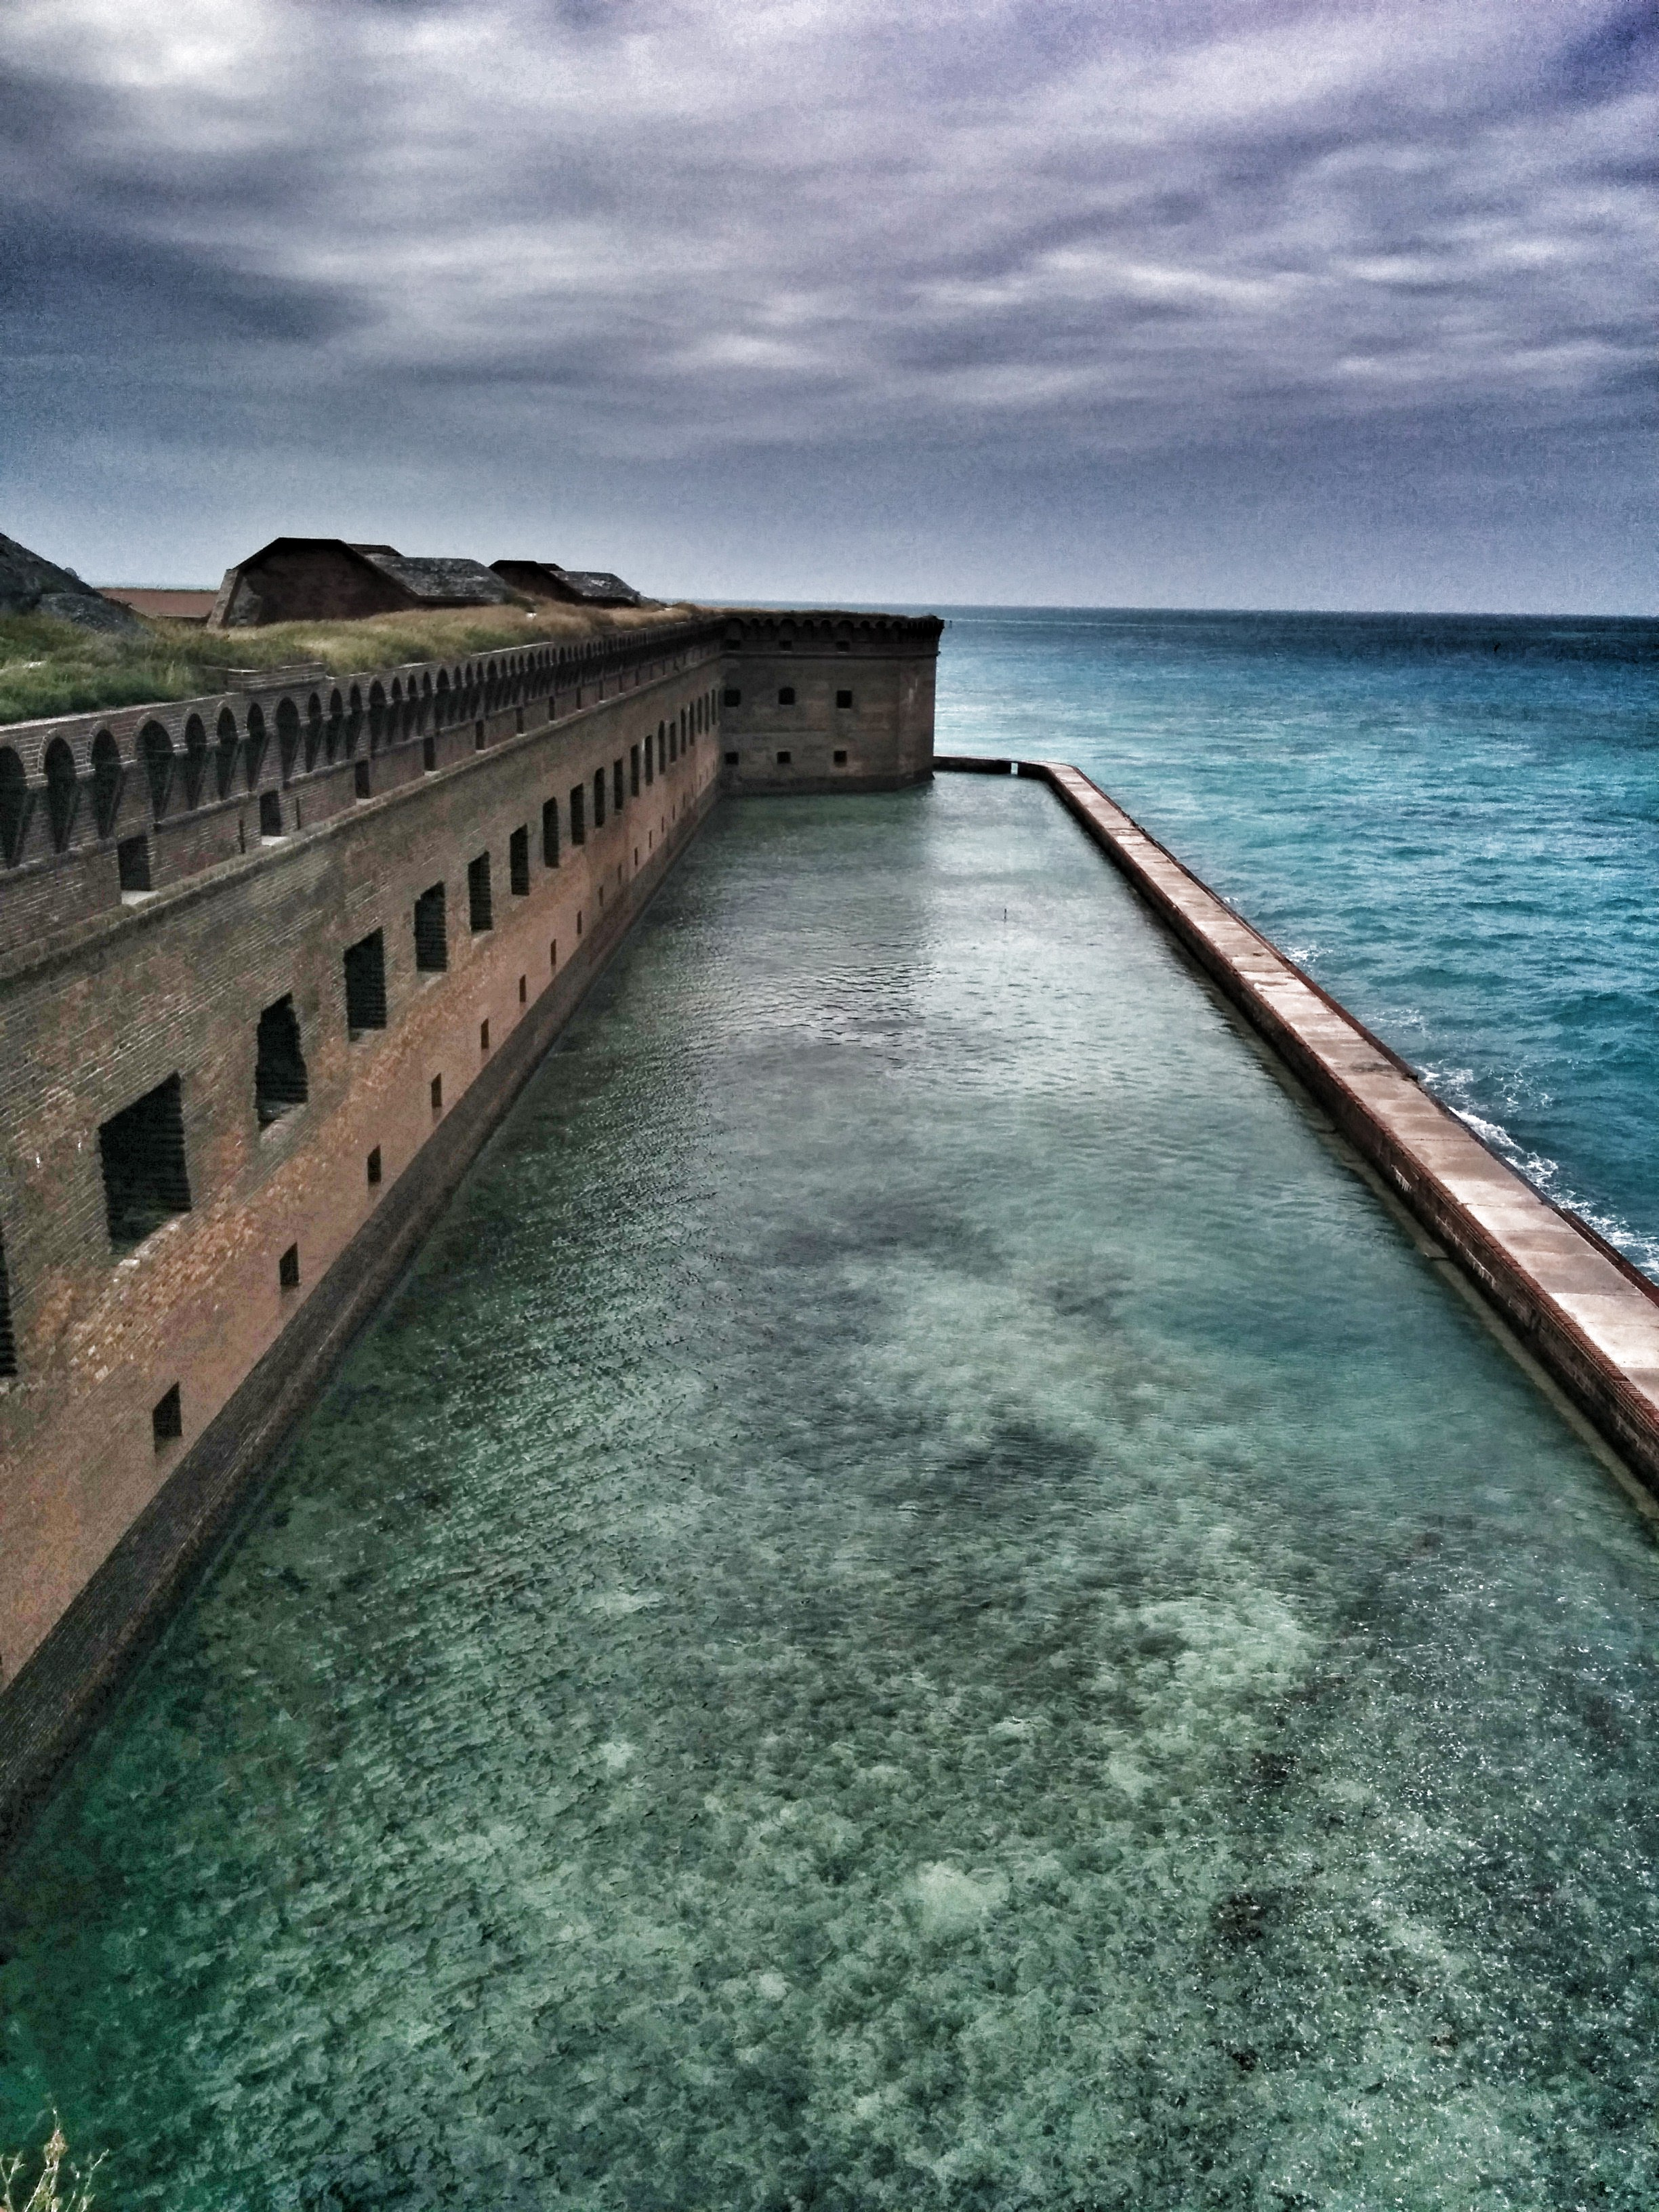 Part of the moat @ Fort Jefferson,  Dry Tortugas National Park . We took a float-plane (bucket list!) to this site on our honeymoon. Built (though never finished) as a fortress and then used as a prison for criminals and deserters of the Civil War, it remains surrounded by shipwreck sites and coral reefs.  @roger.cummings